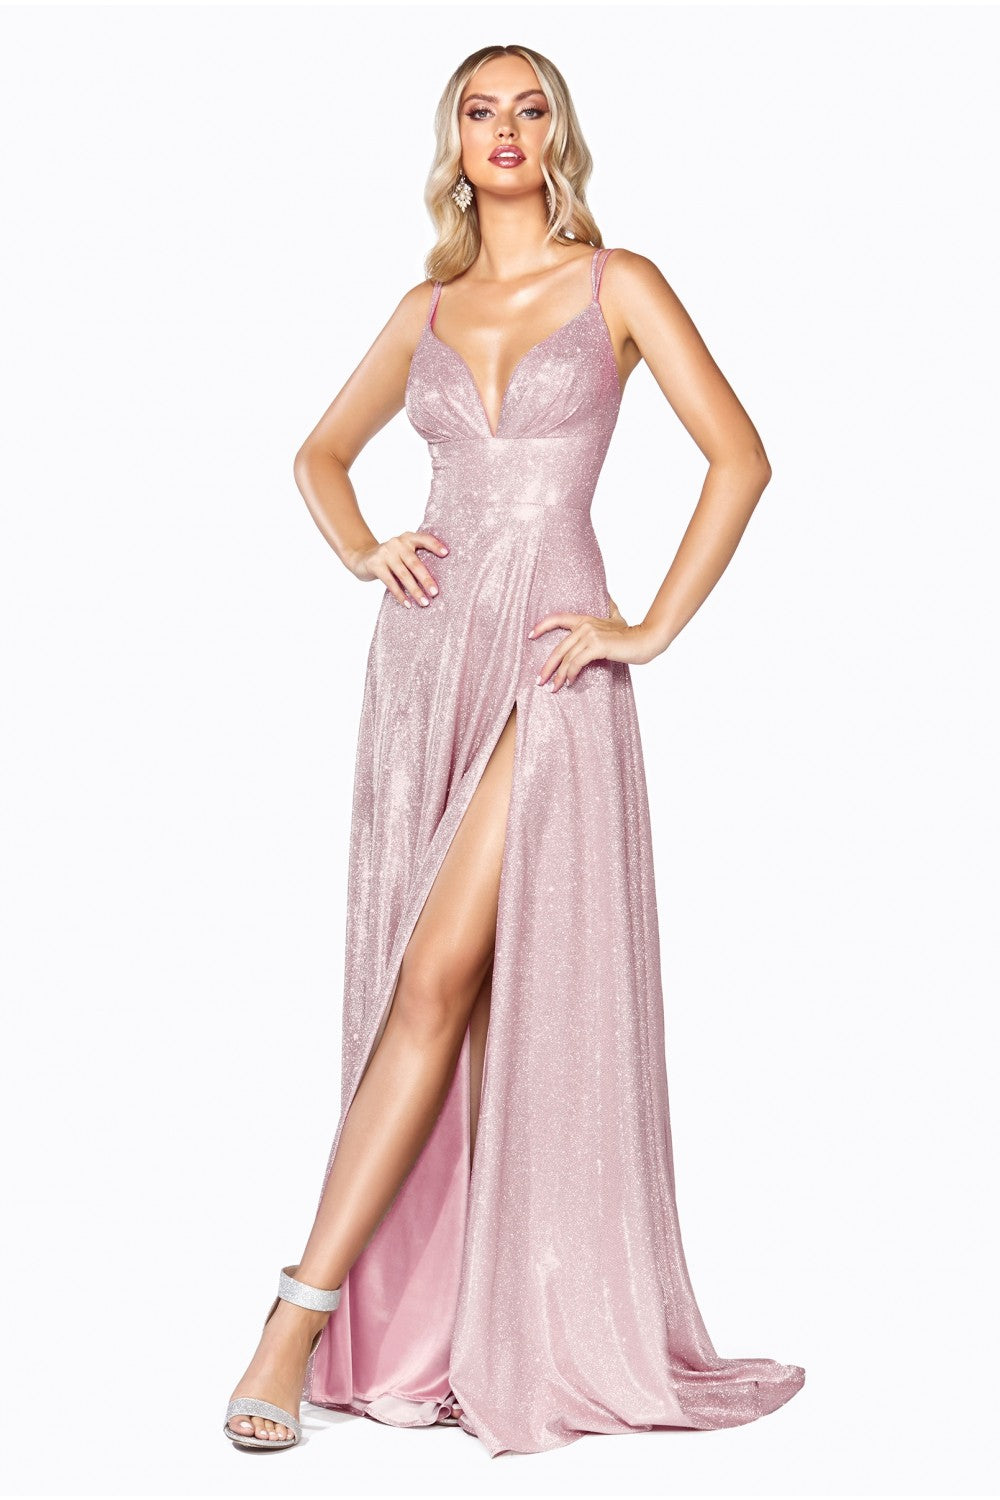 Cinderella Divine Chart I CD CD906 - Glitter Metallic A-line dress with V-Neck Spaghetti Straps & Leg Slit - Diggz Prom